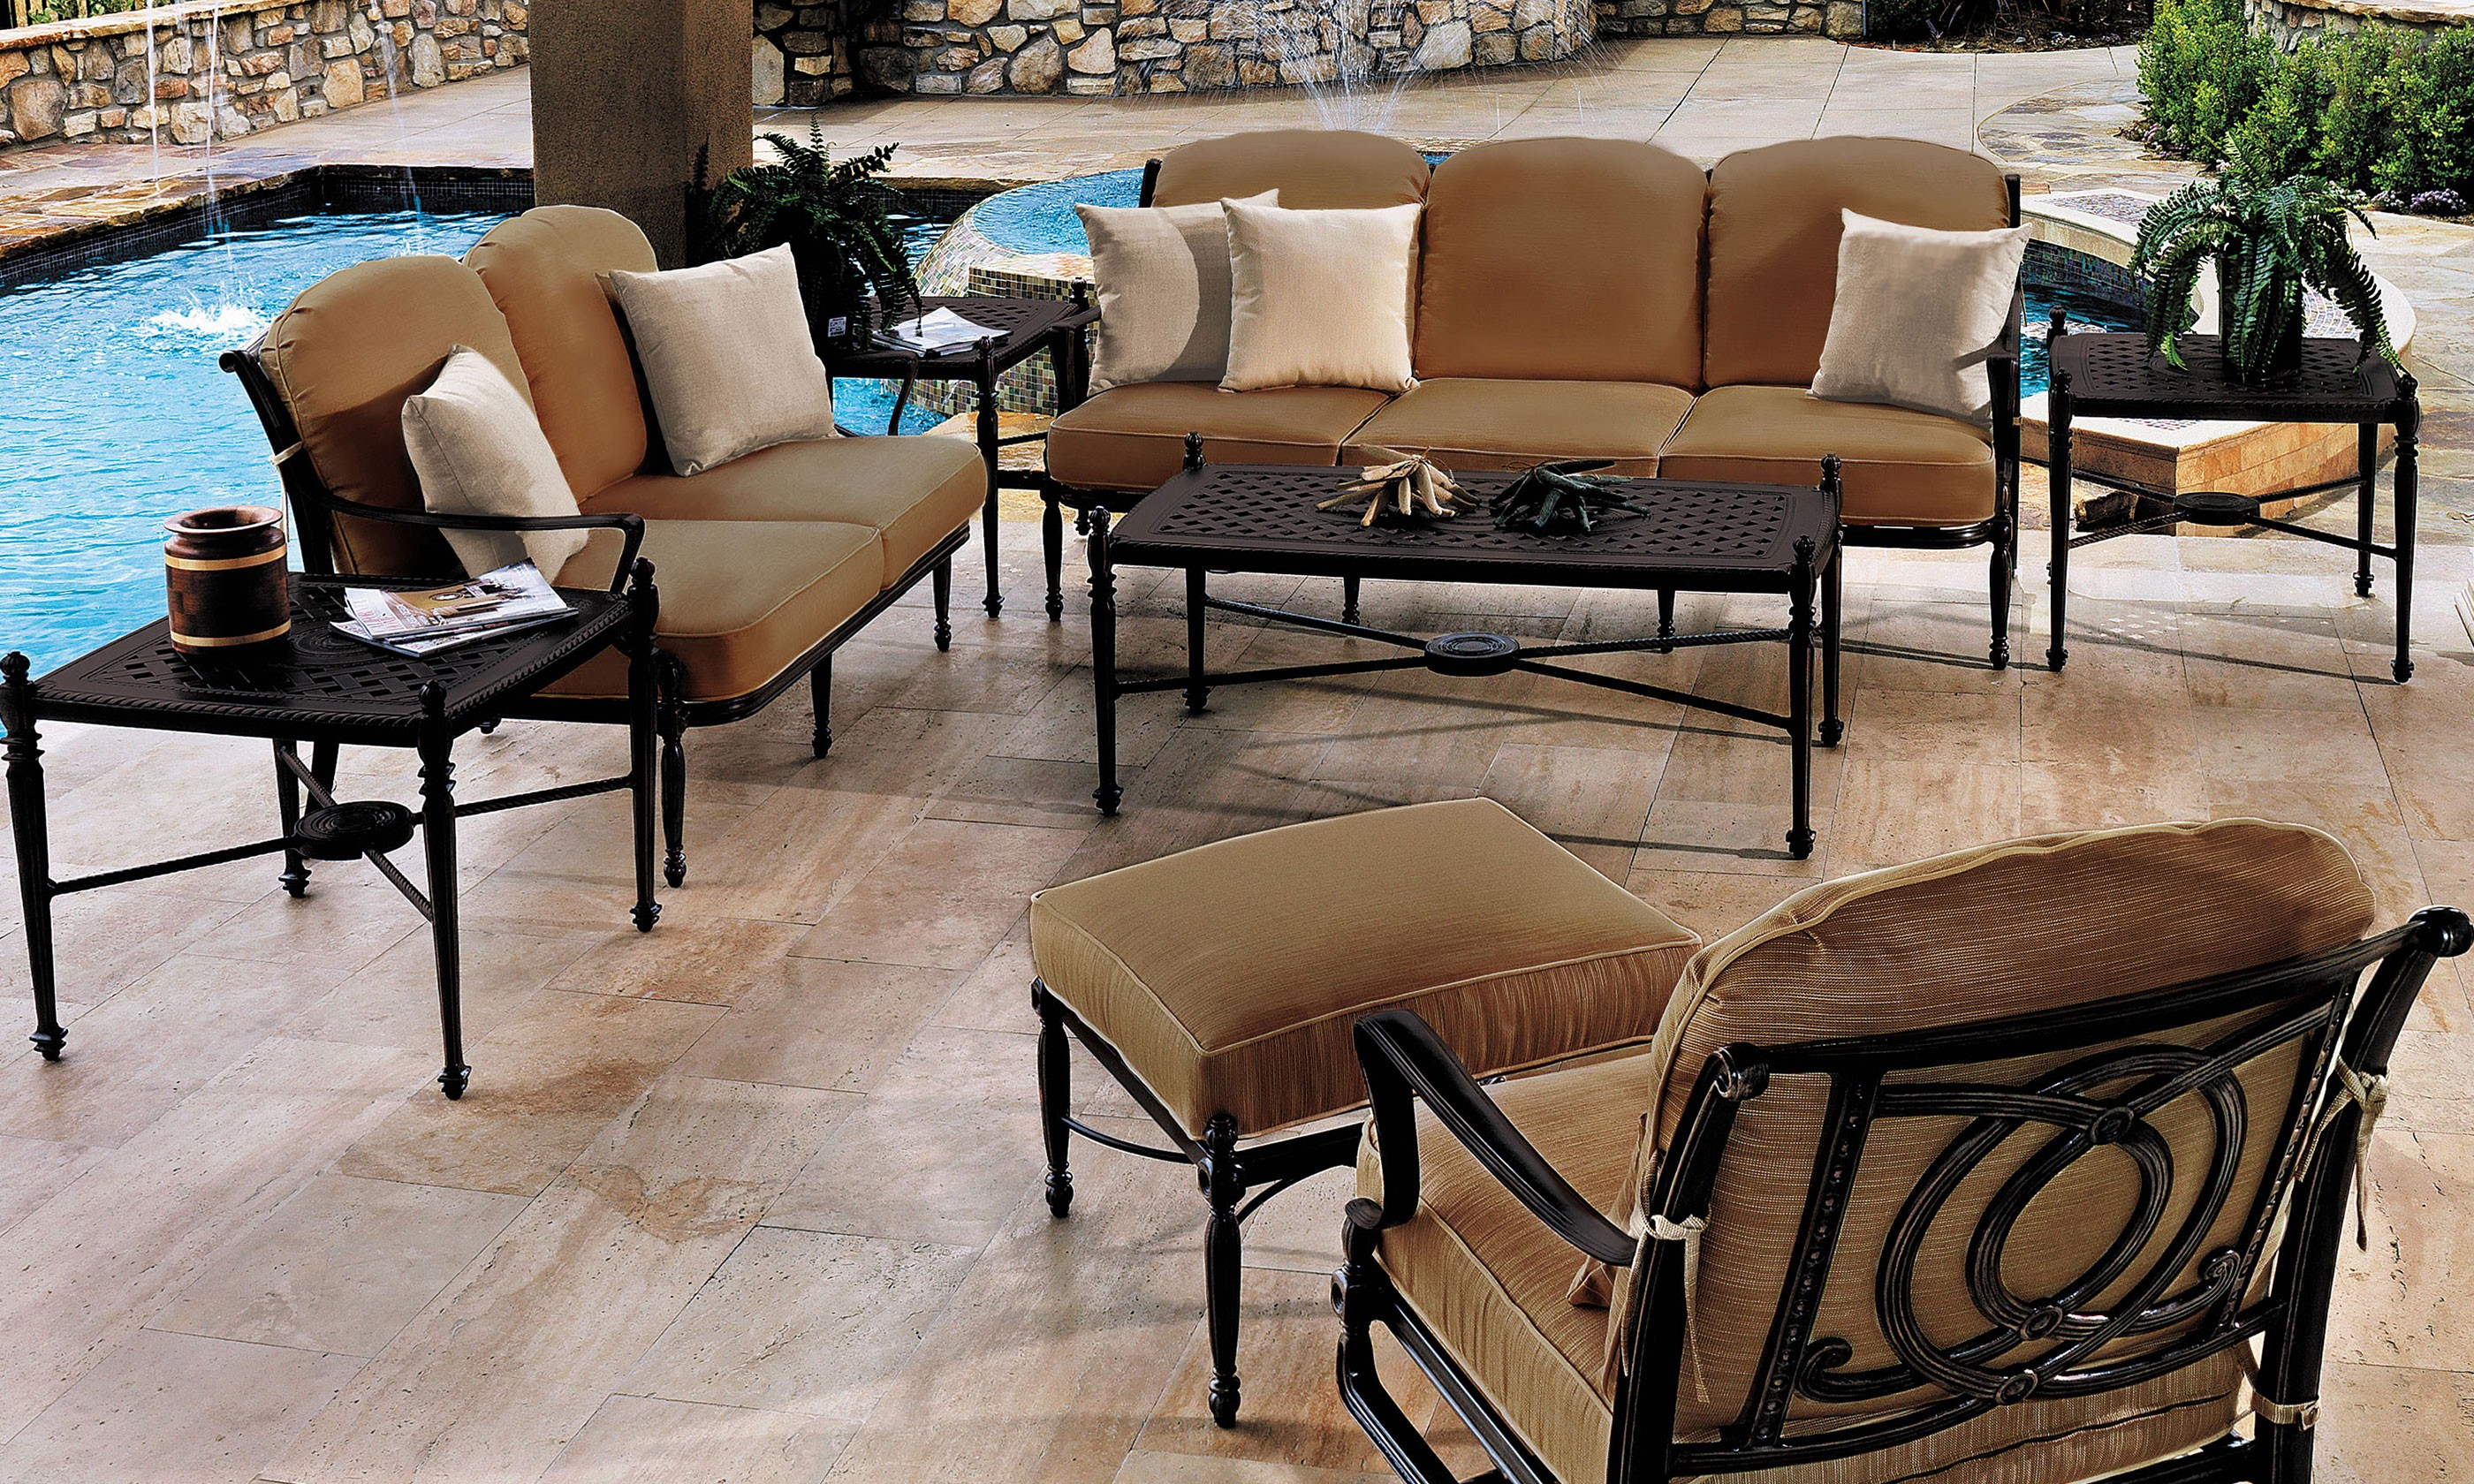 Rich's Outdoor Furniture